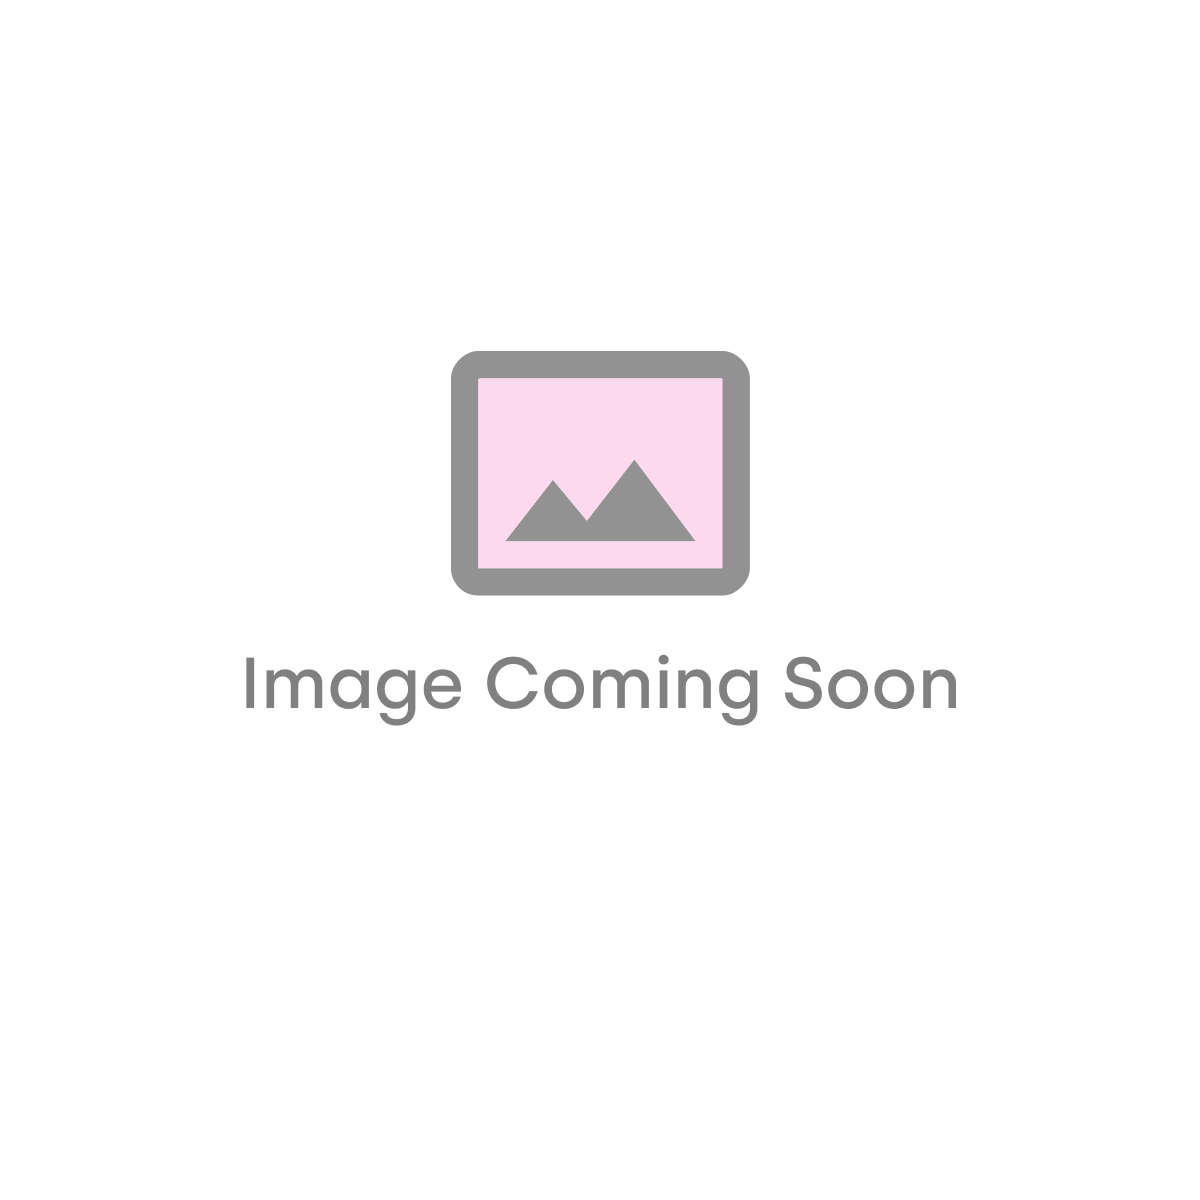 Africa Hex Matt 23 x 27cm Porcelain Tile - 0.75sqm per box (17385)